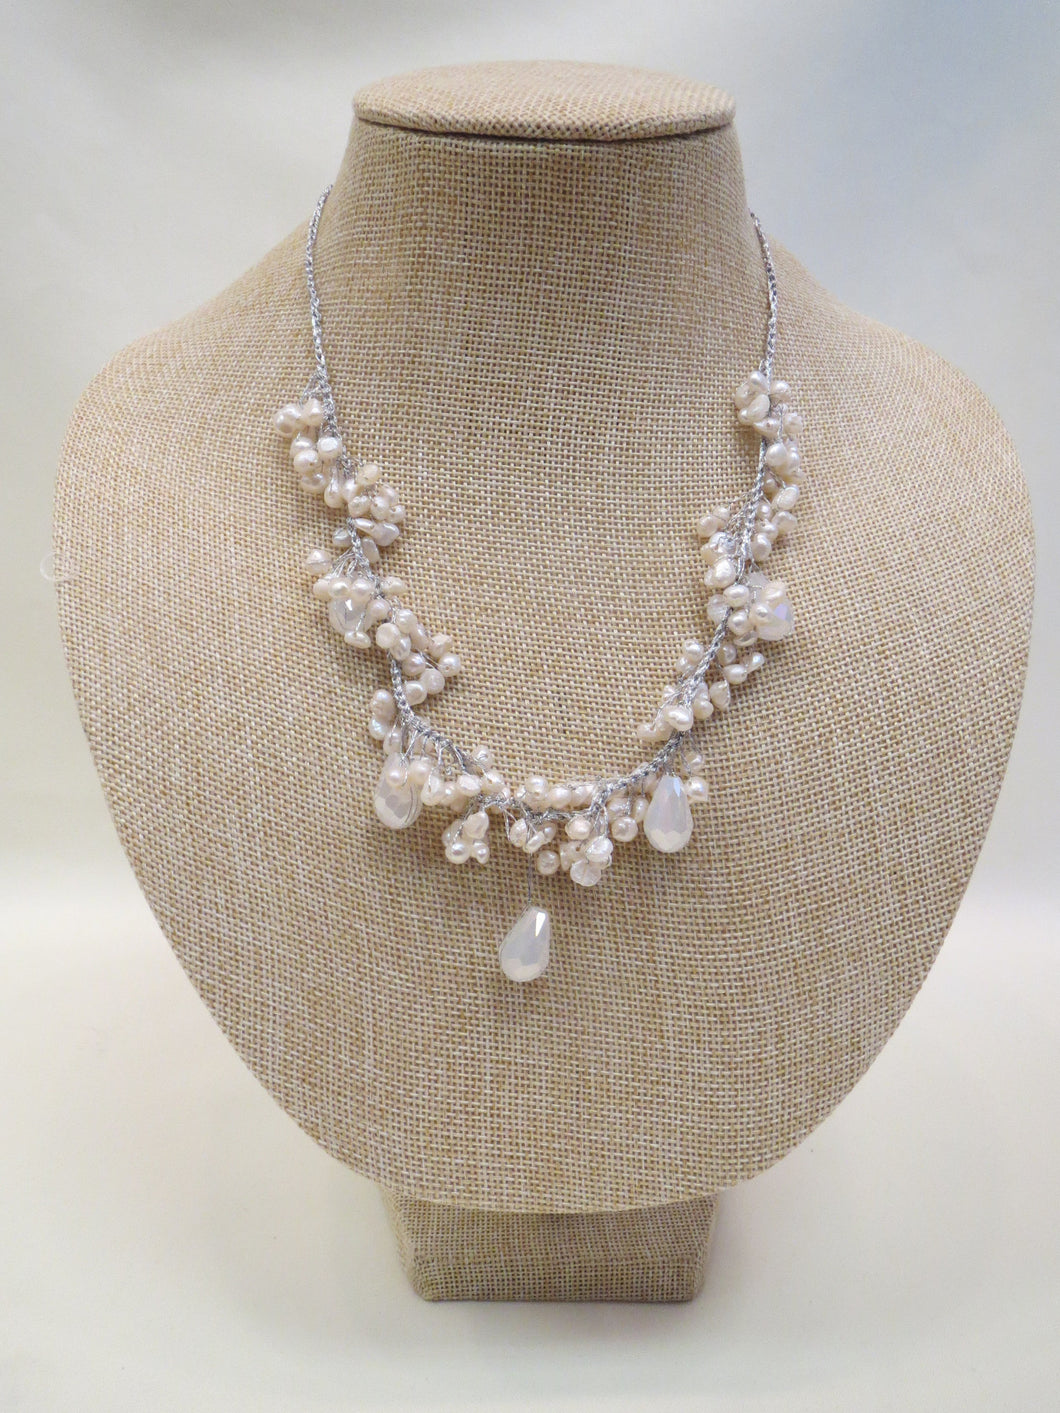 ADO | Silver Thread Necklace with Pearls